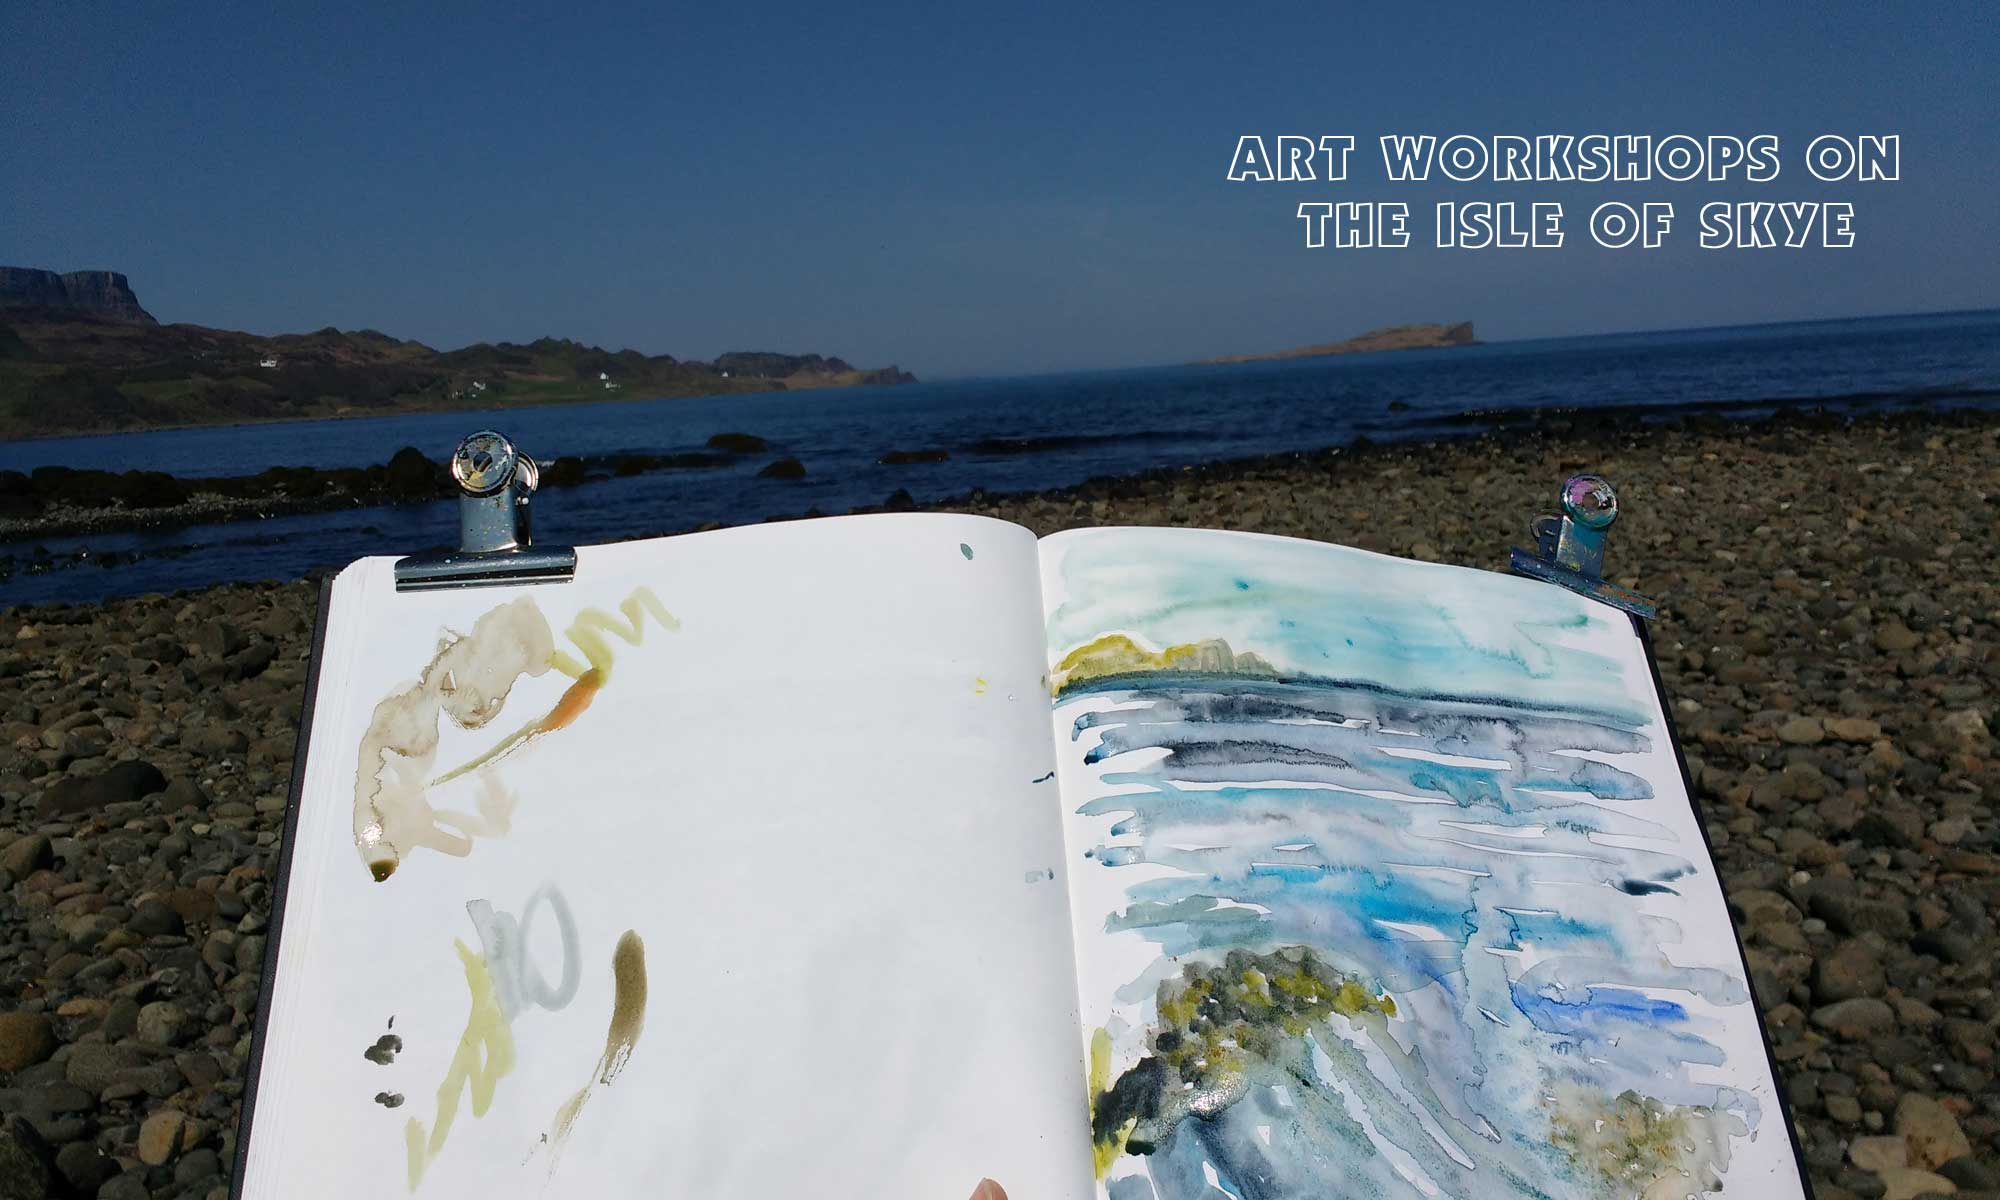 Art Workshops on the Isle of Skye